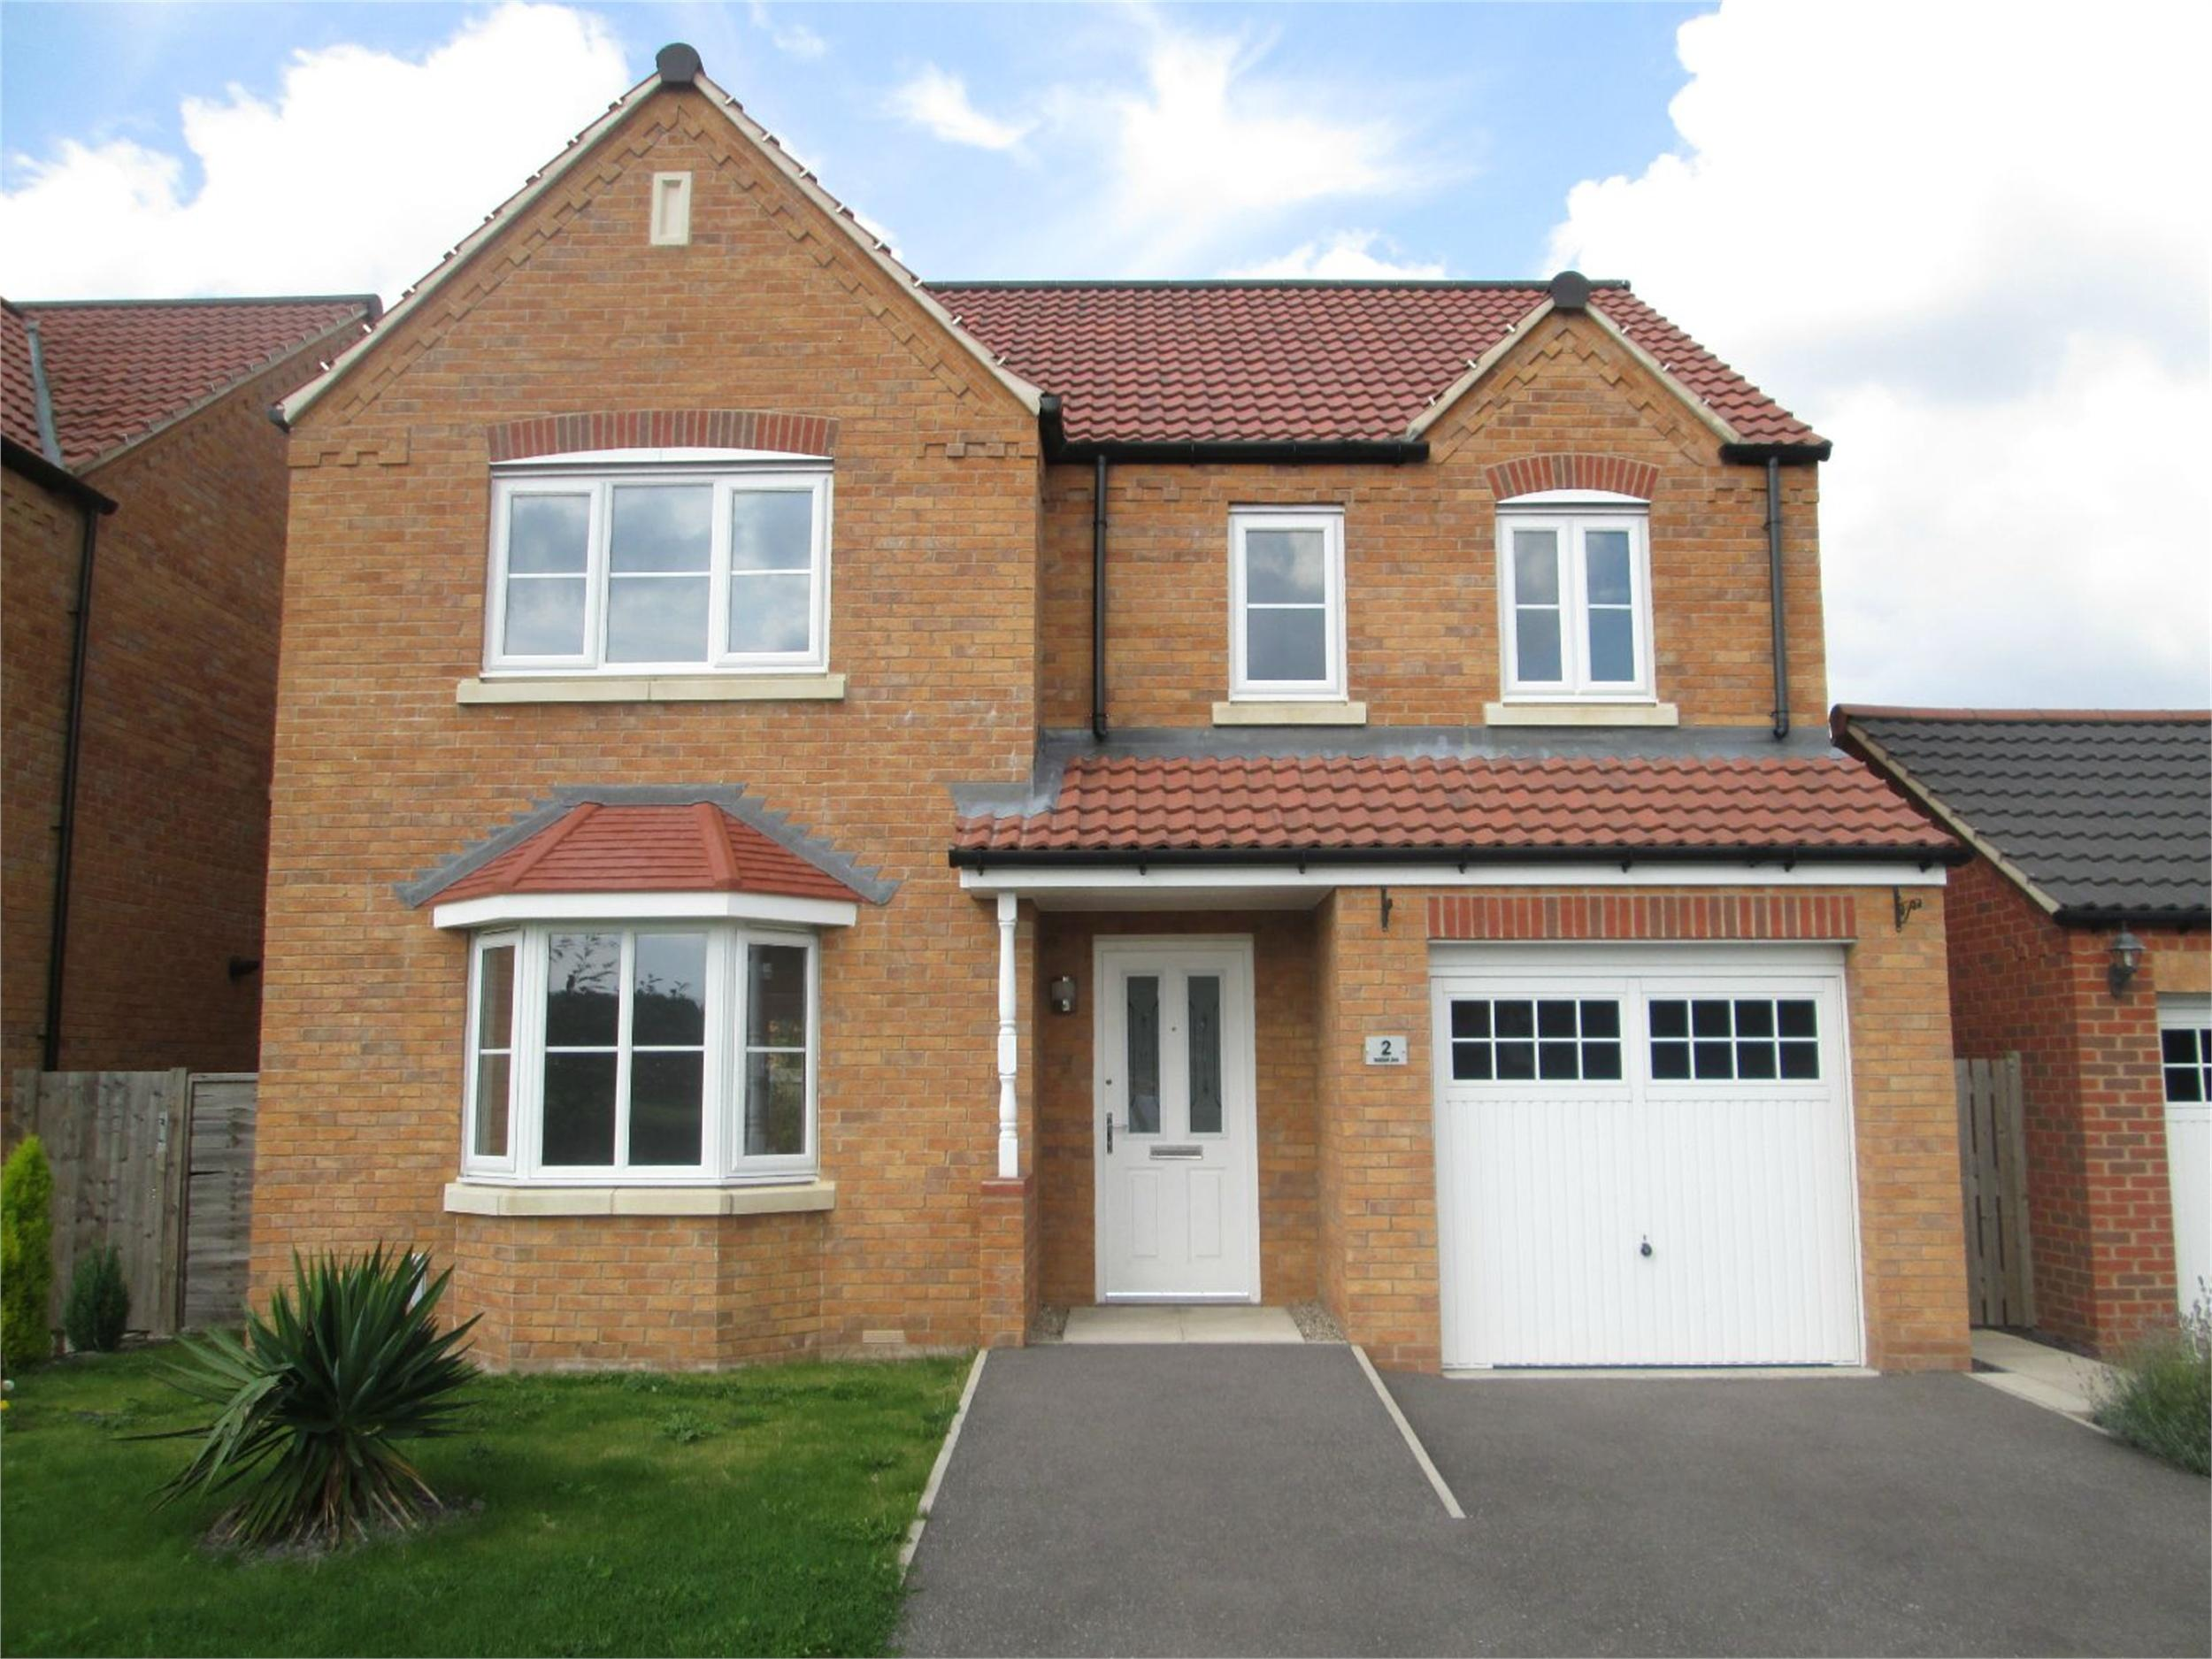 Whitegates mansfield 4 bedroom detached house for sale in for House 4